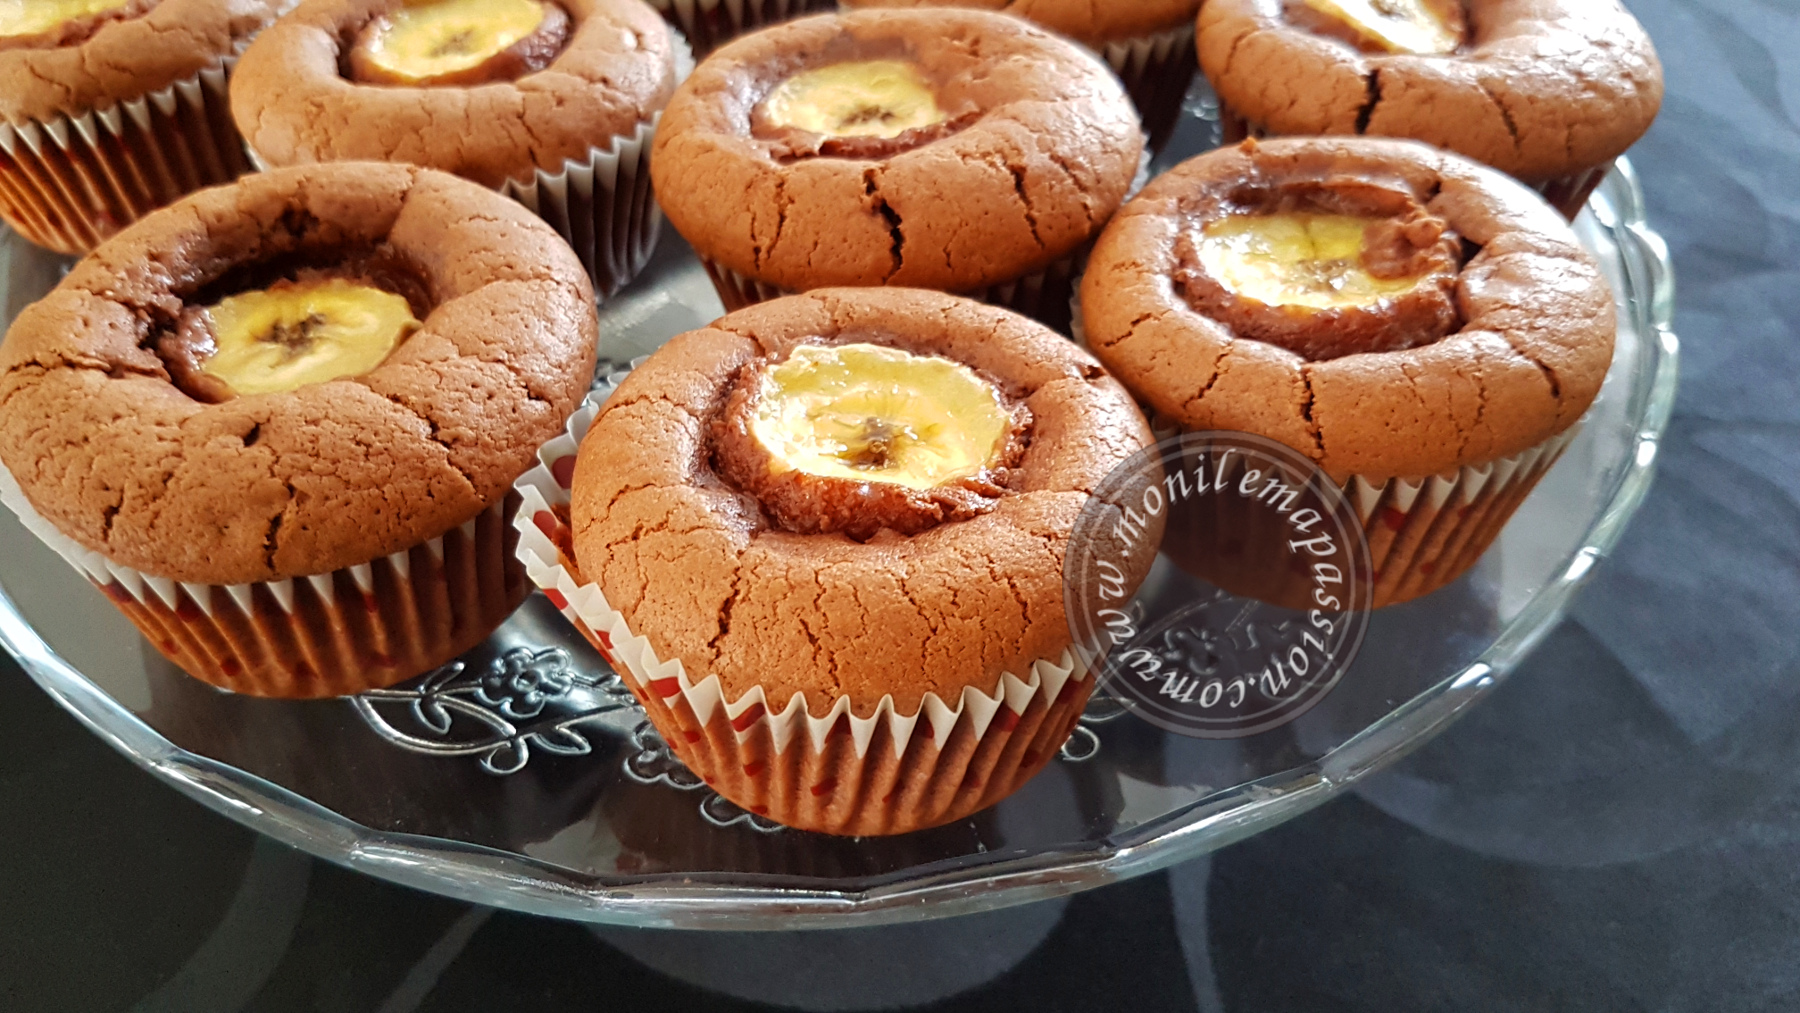 Muffins Chocolat/Banane – Chocolate And Banana Muffins